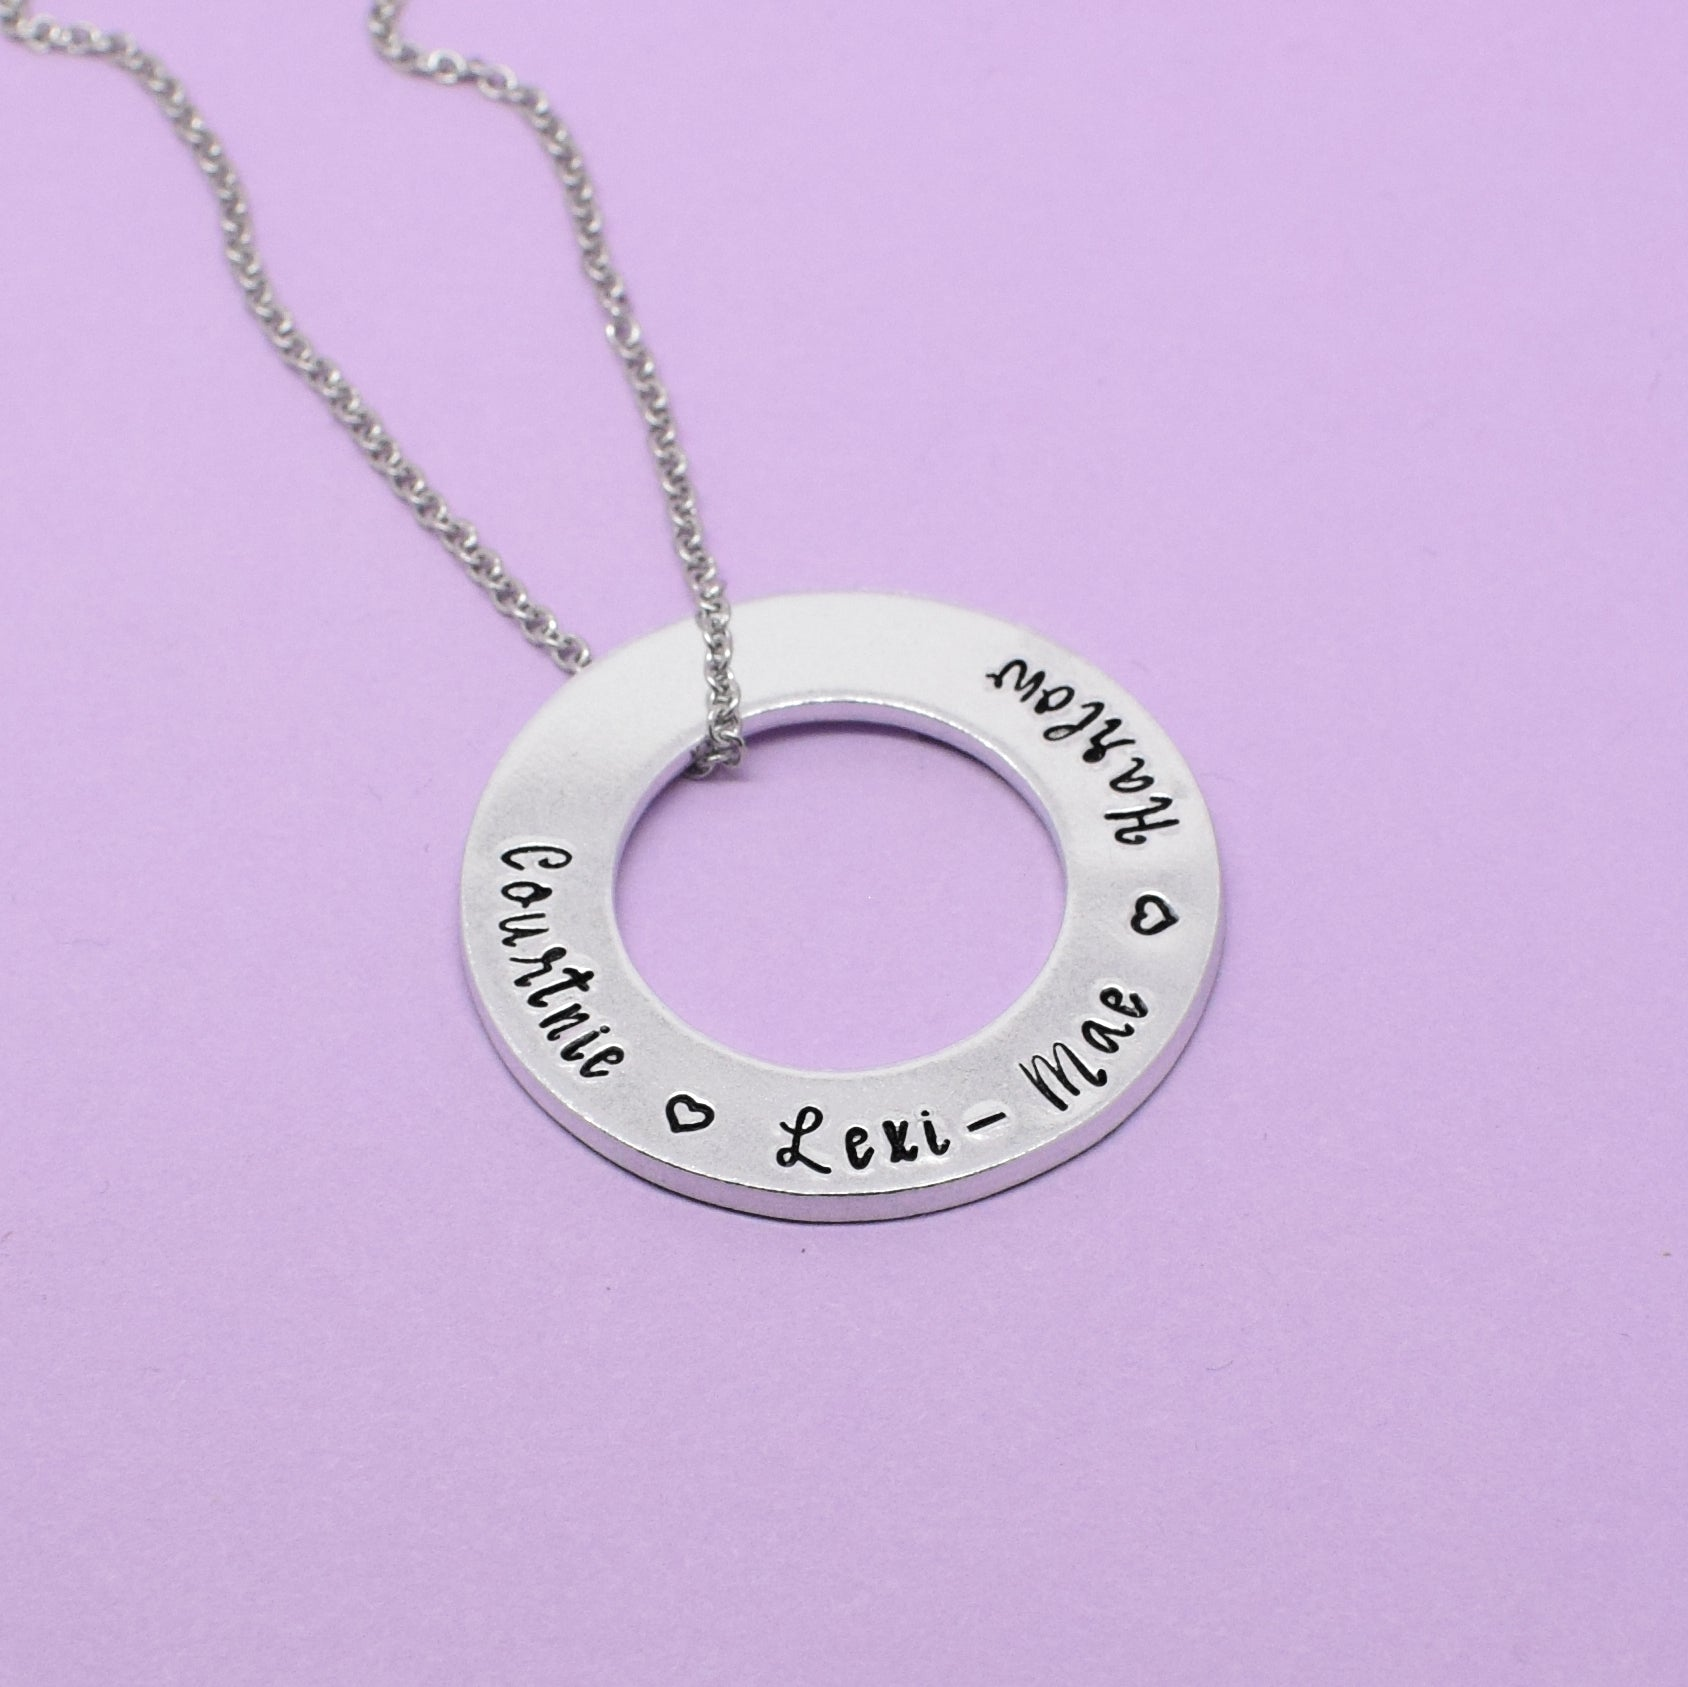 Personalised Name Washer Necklace, Mum Necklace, Personalised Mother Necklace, Name Necklace, Gift For Mum, Mother & Child Necklace